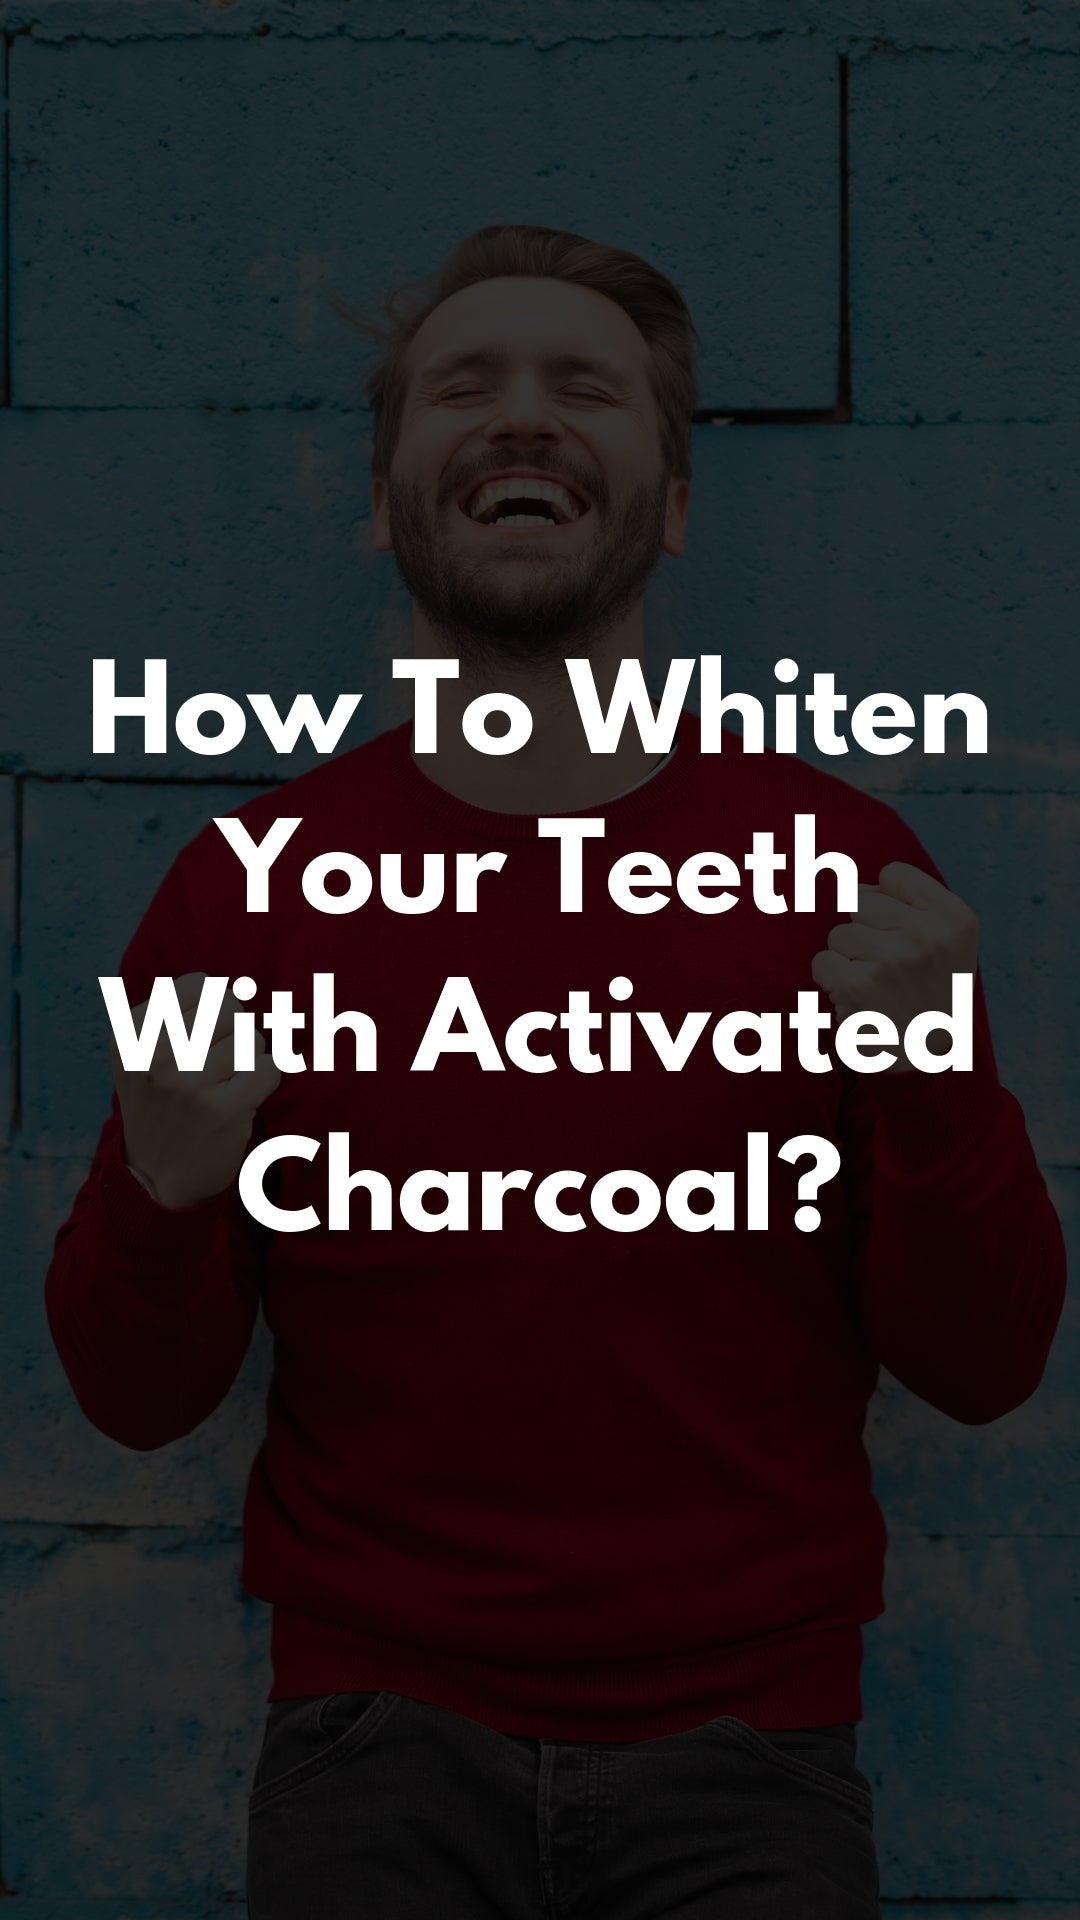 How To Whiten Teeth With Actinera Activated Charcoal?